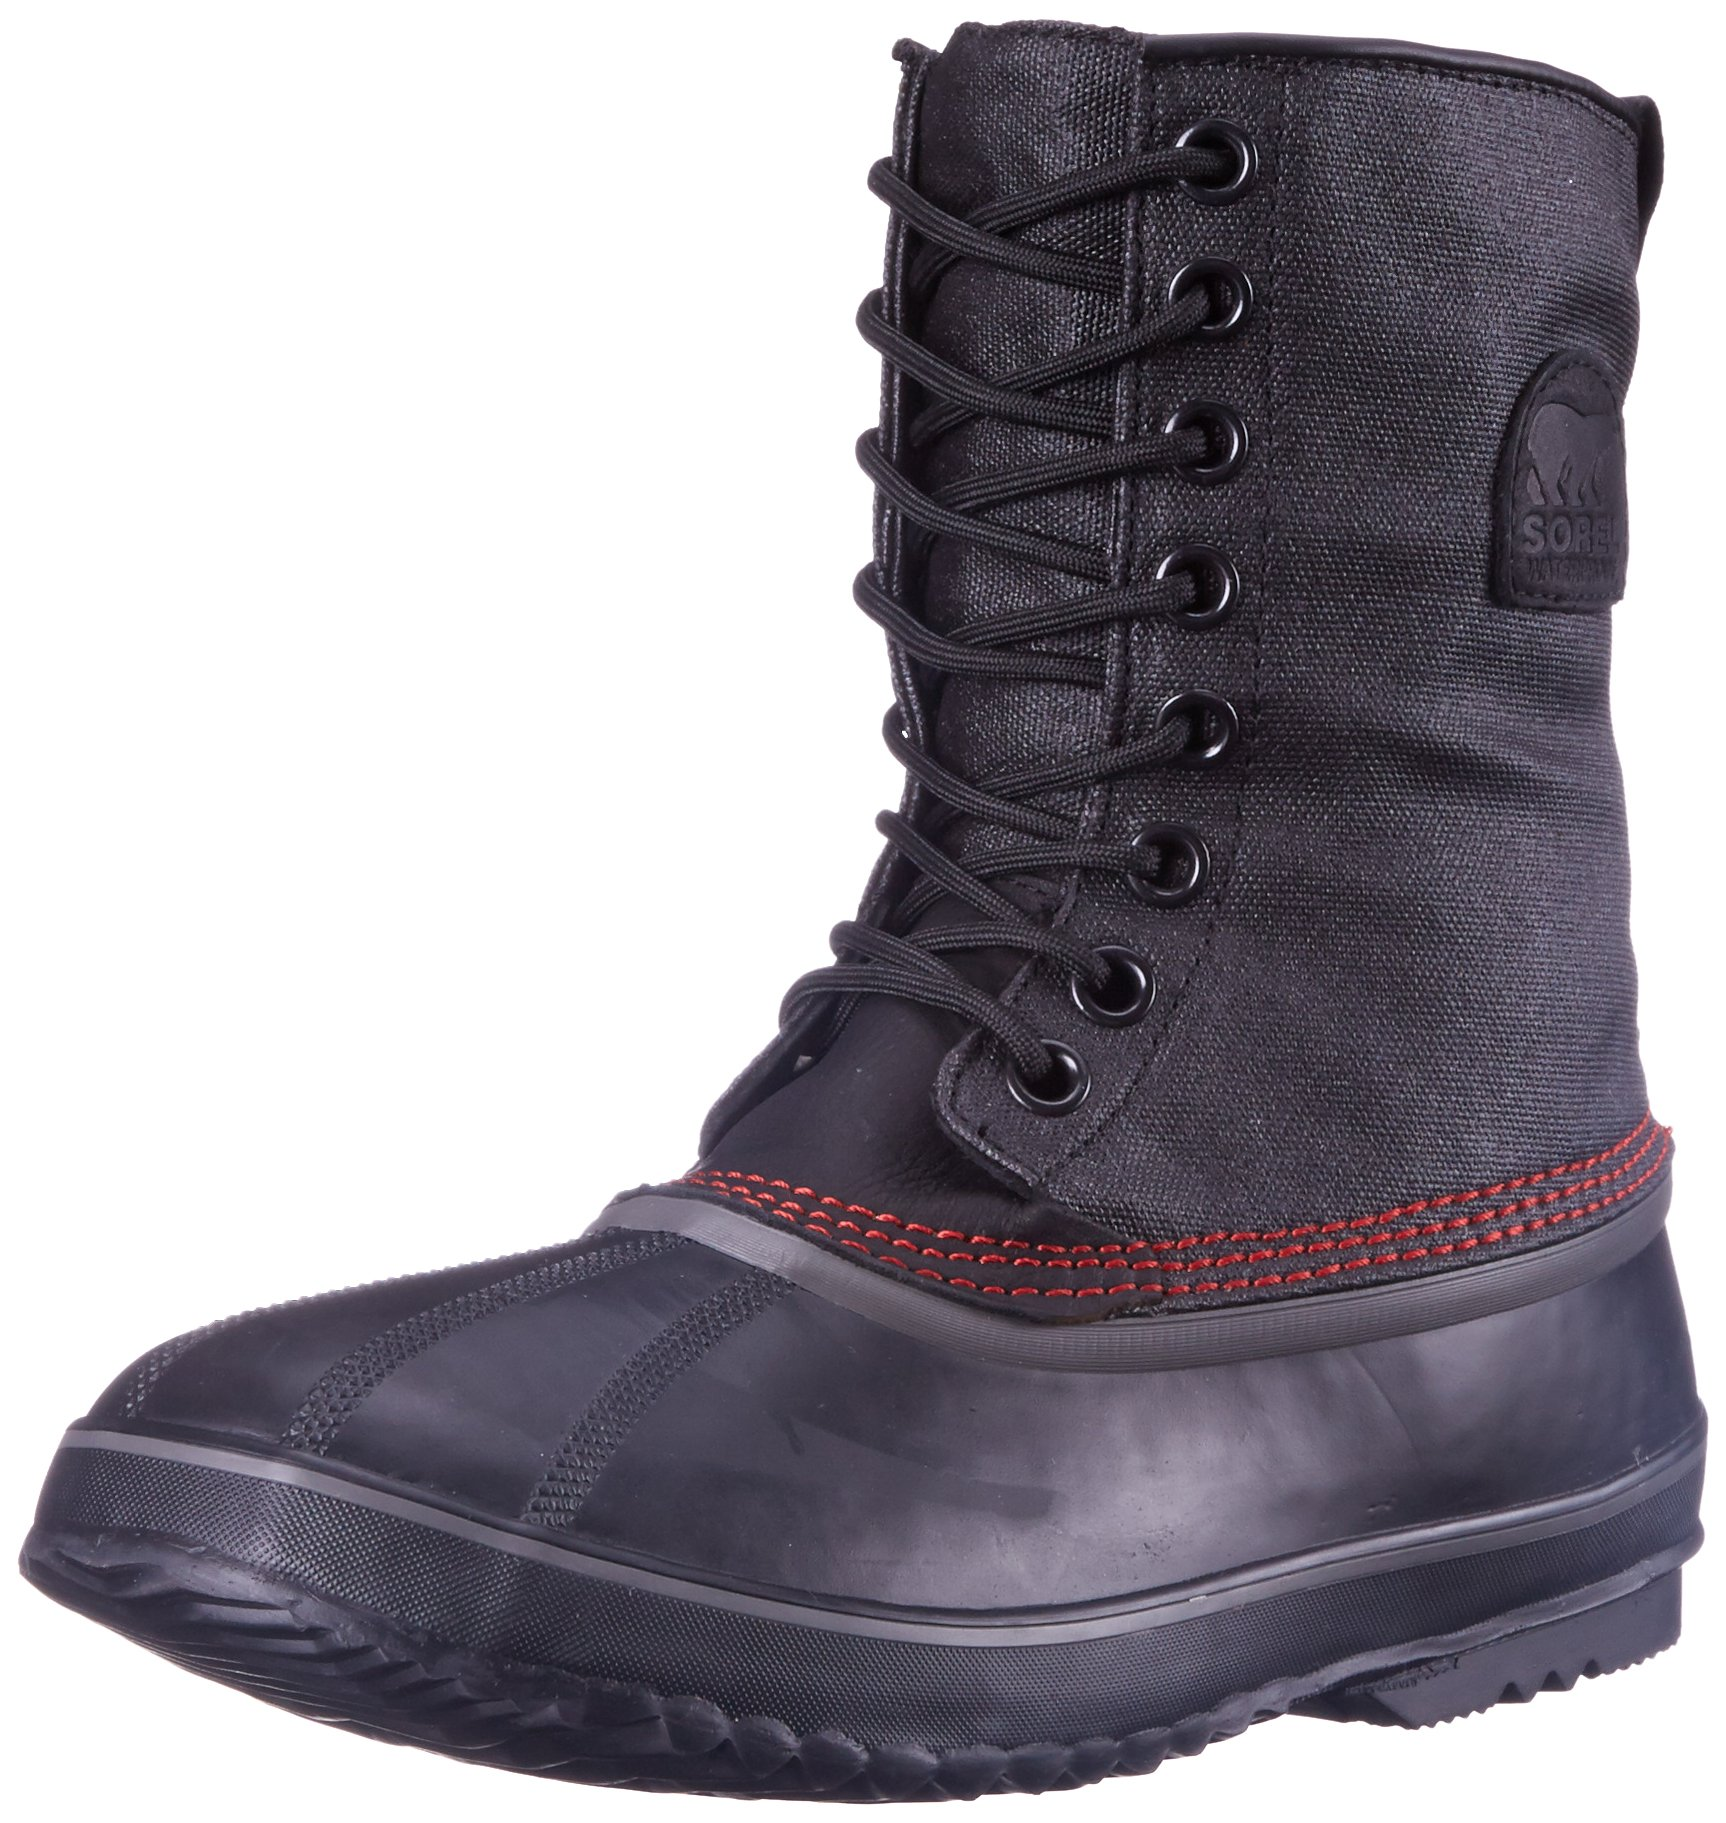 SOREL Men's 1964 Premium T CVS Snow Boot, Black, Sail Red, 10 D US by SOREL